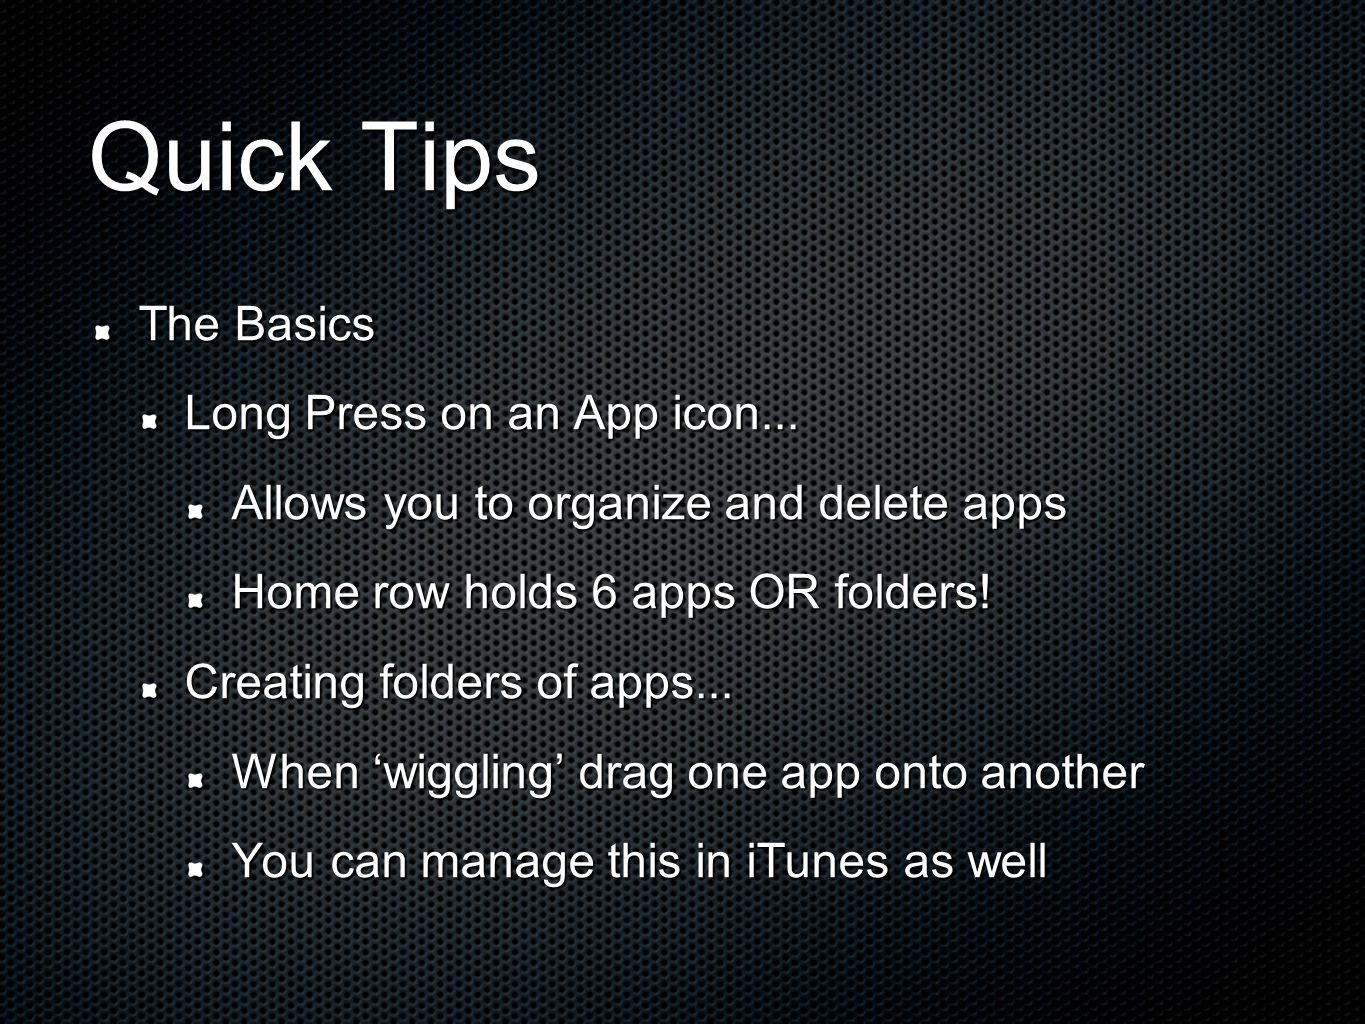 Quick Tips The Basics Long Press on an App icon... Allows you to organize and delete apps Home row holds 6 apps OR folders! Creating folders of apps..